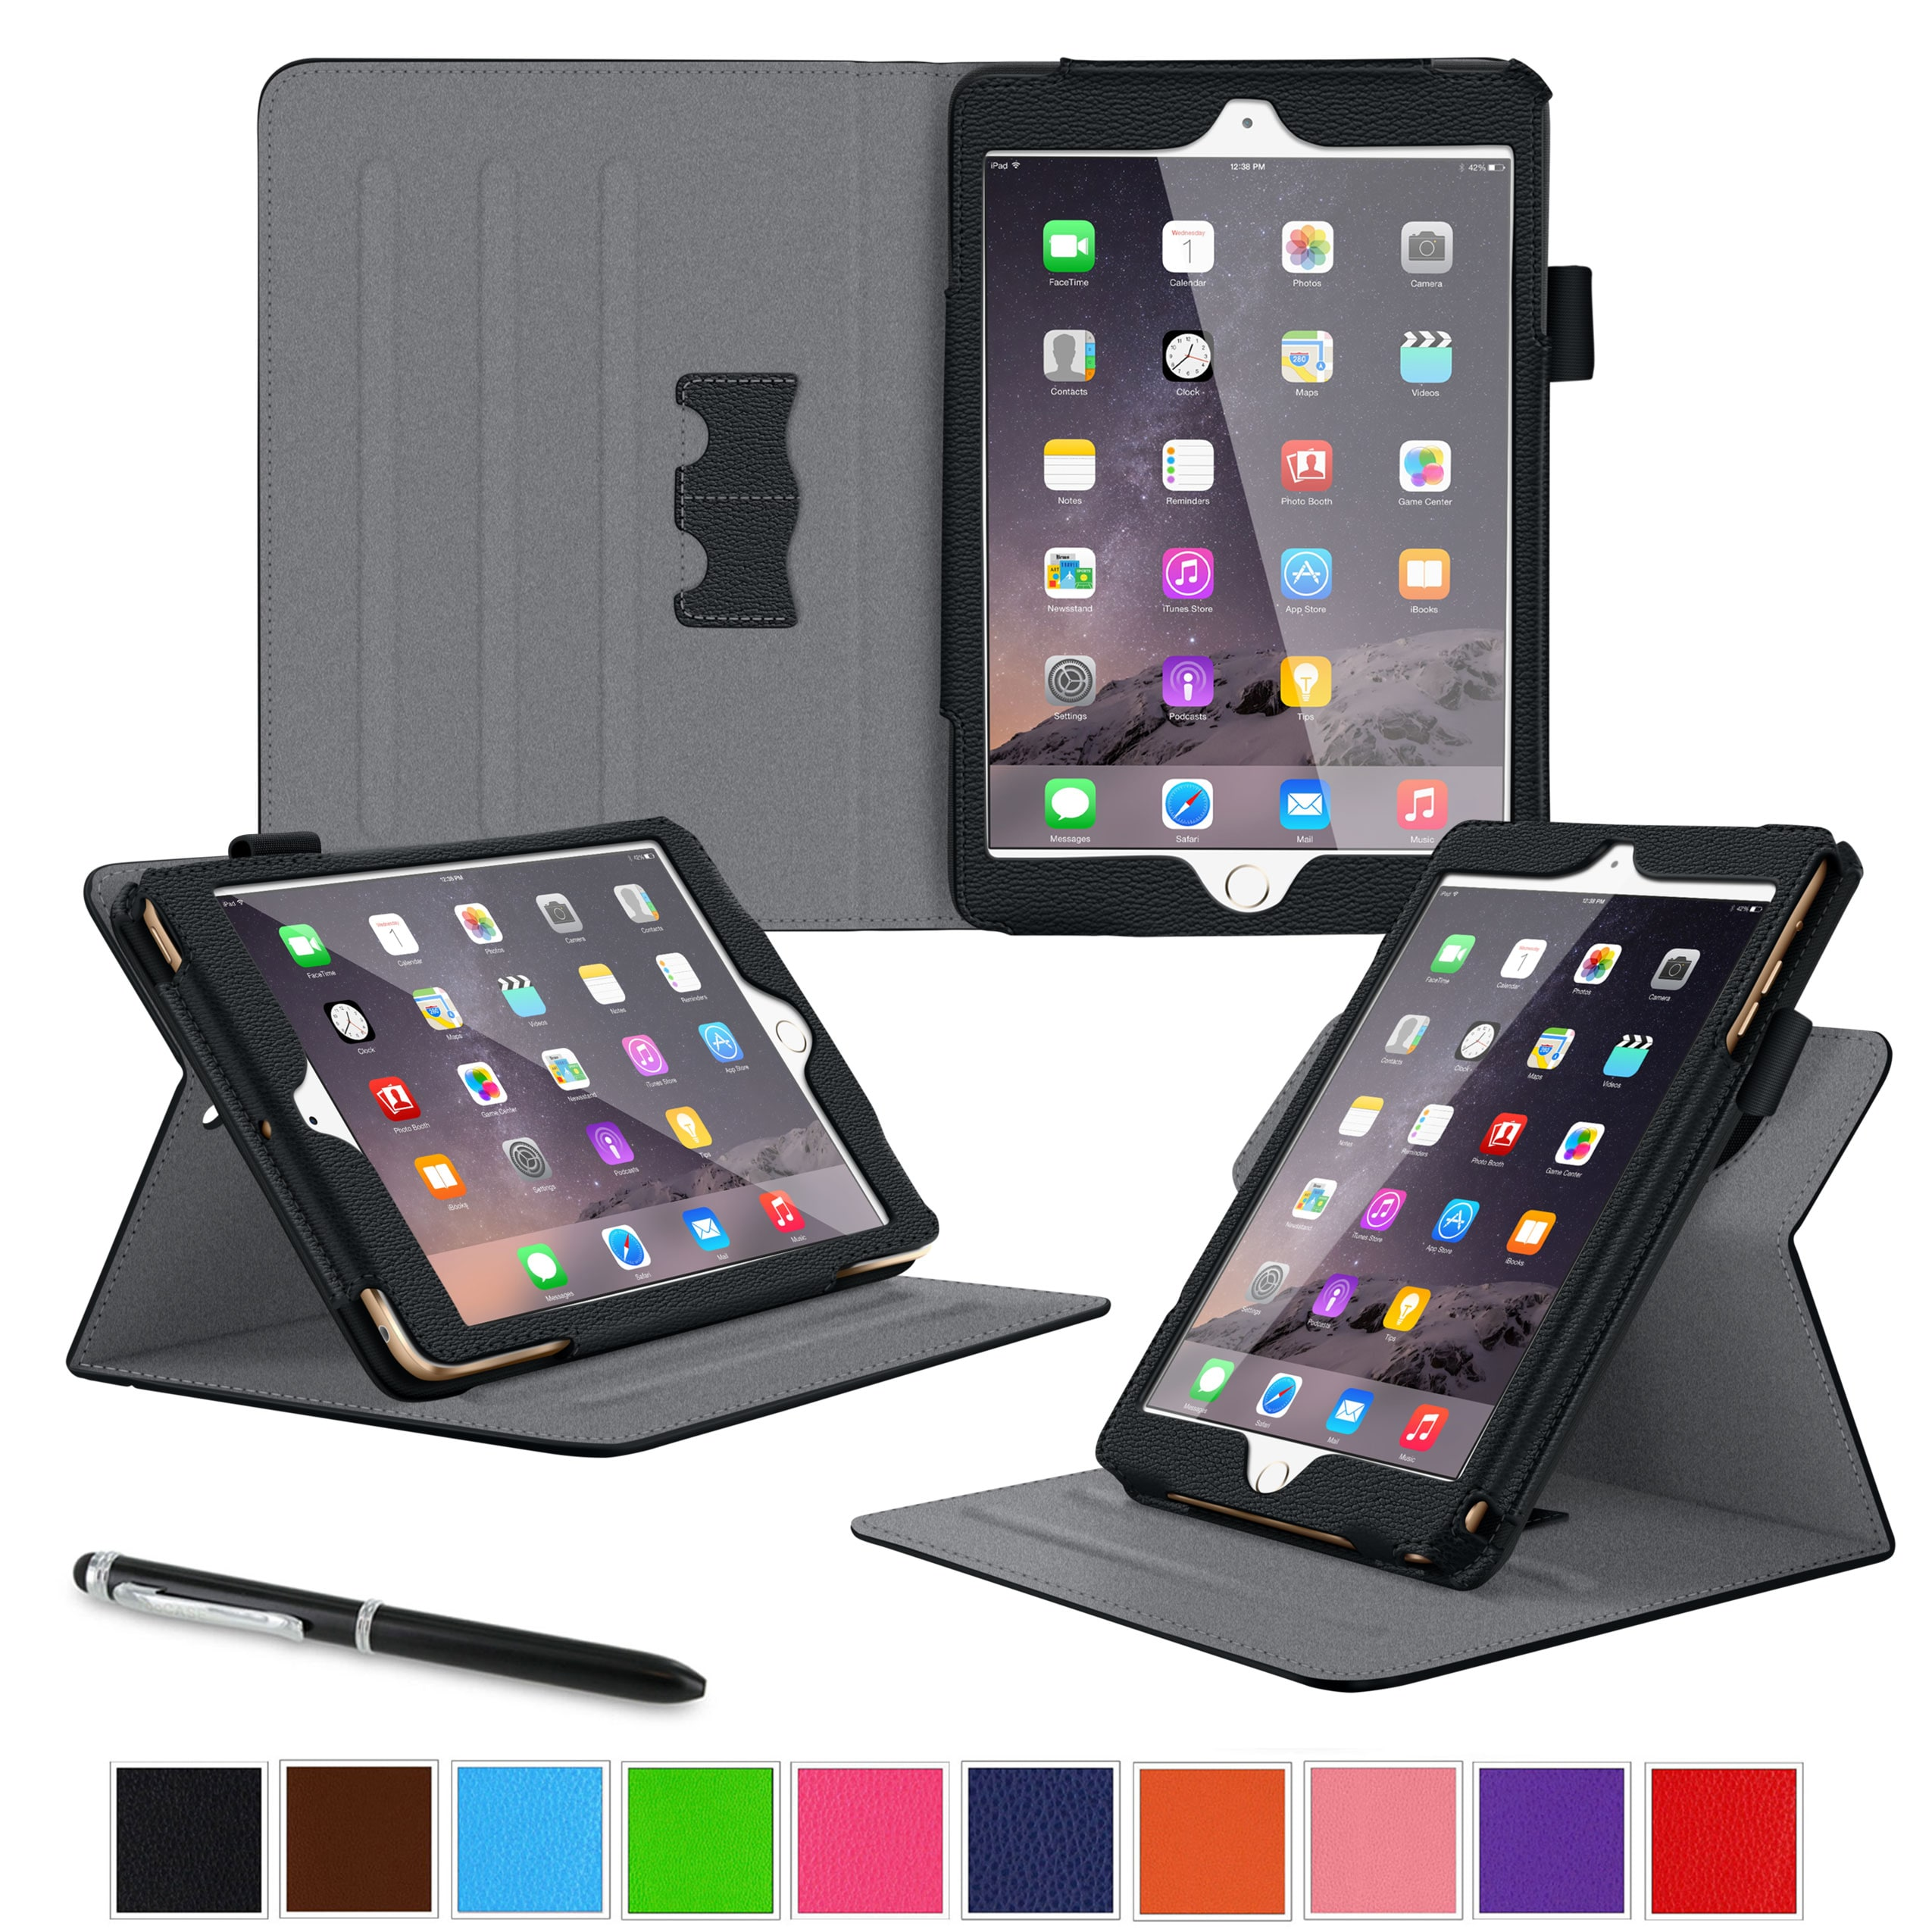 roocase Dual View Case for Apple iPad Mini 4